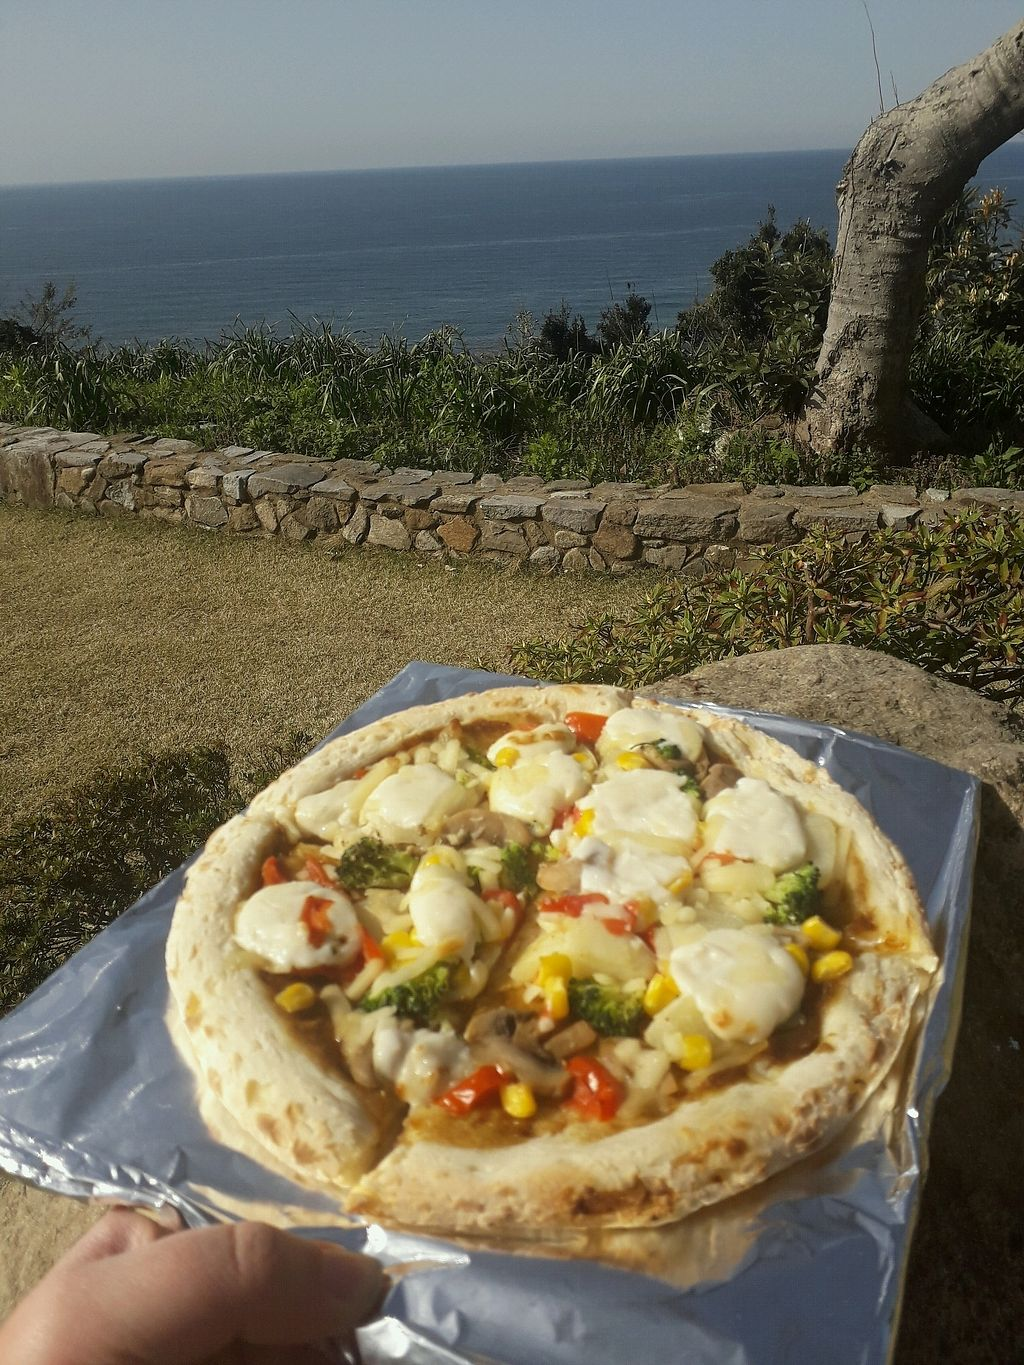 """Photo of Cafe Earth  by <a href=""""/members/profile/DublinVegan1986"""">DublinVegan1986</a> <br/>vegan pizza by the sea <br/> March 31, 2018  - <a href='/contact/abuse/image/80686/378632'>Report</a>"""